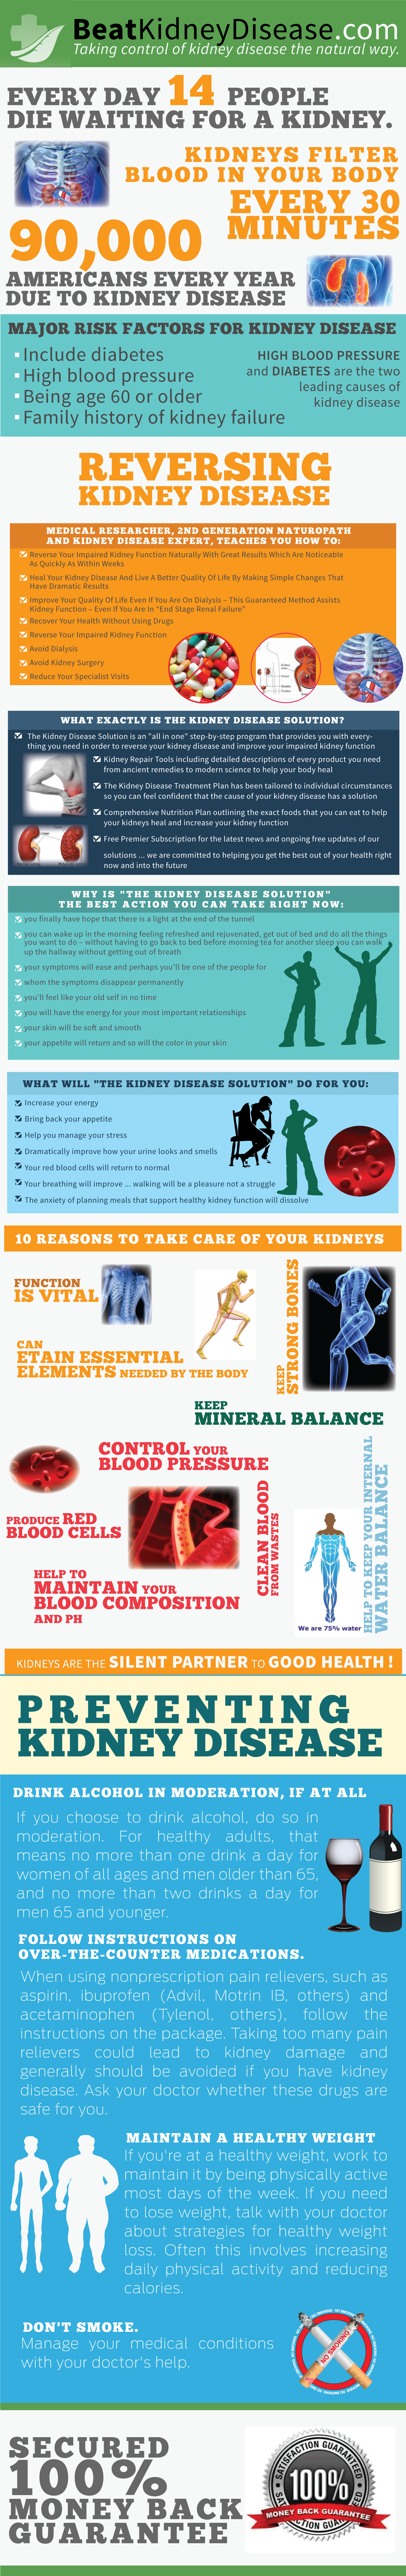 Taking Control of Kidney Disease the Natural Way Infographic